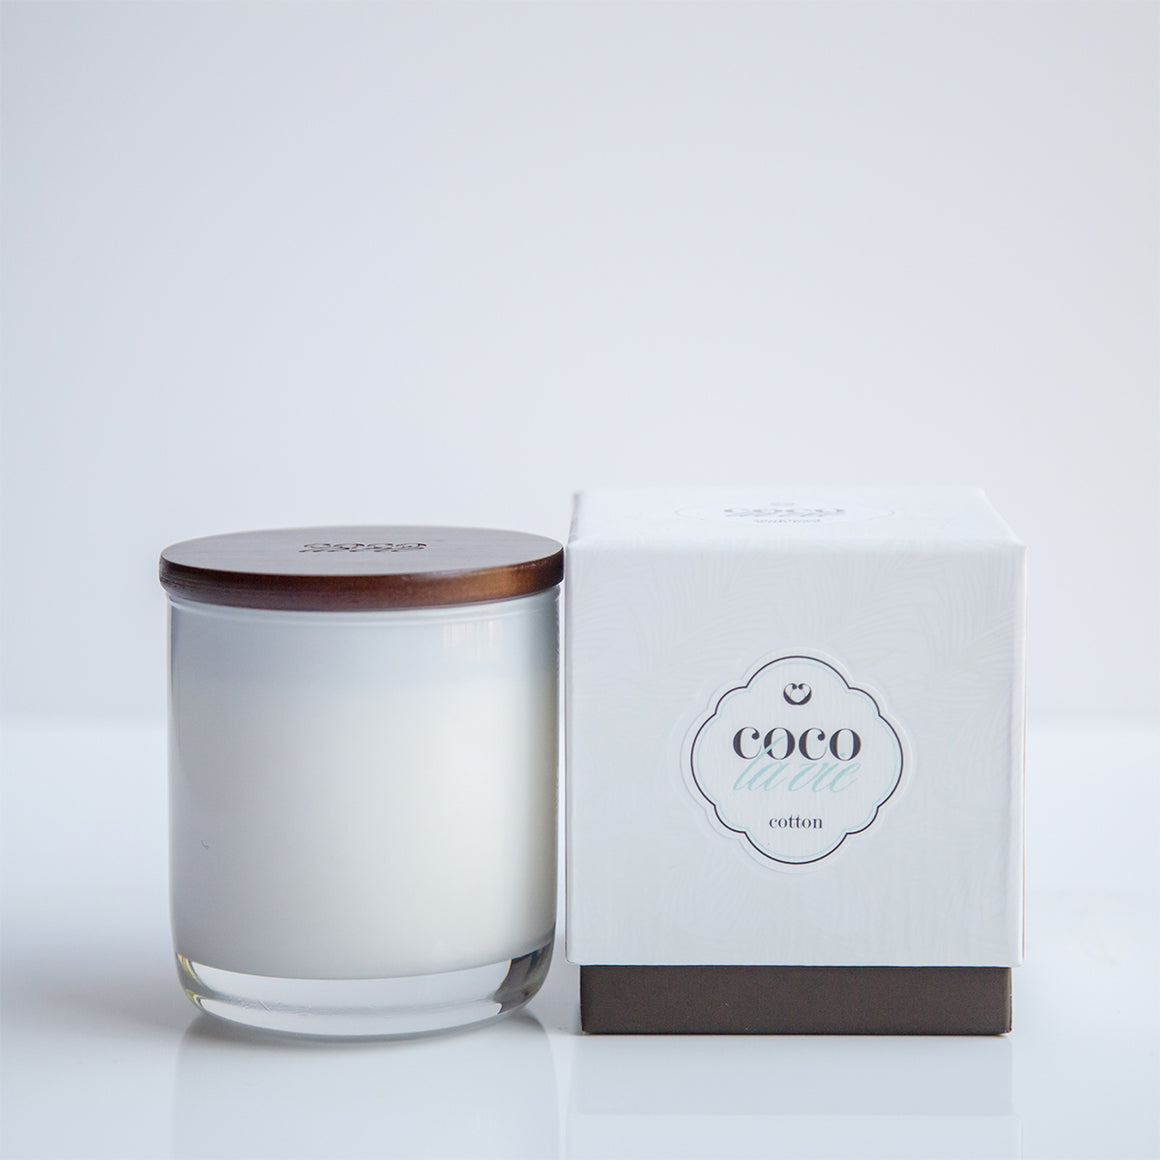 Coco La Vie COTTON Scented Massage Candle